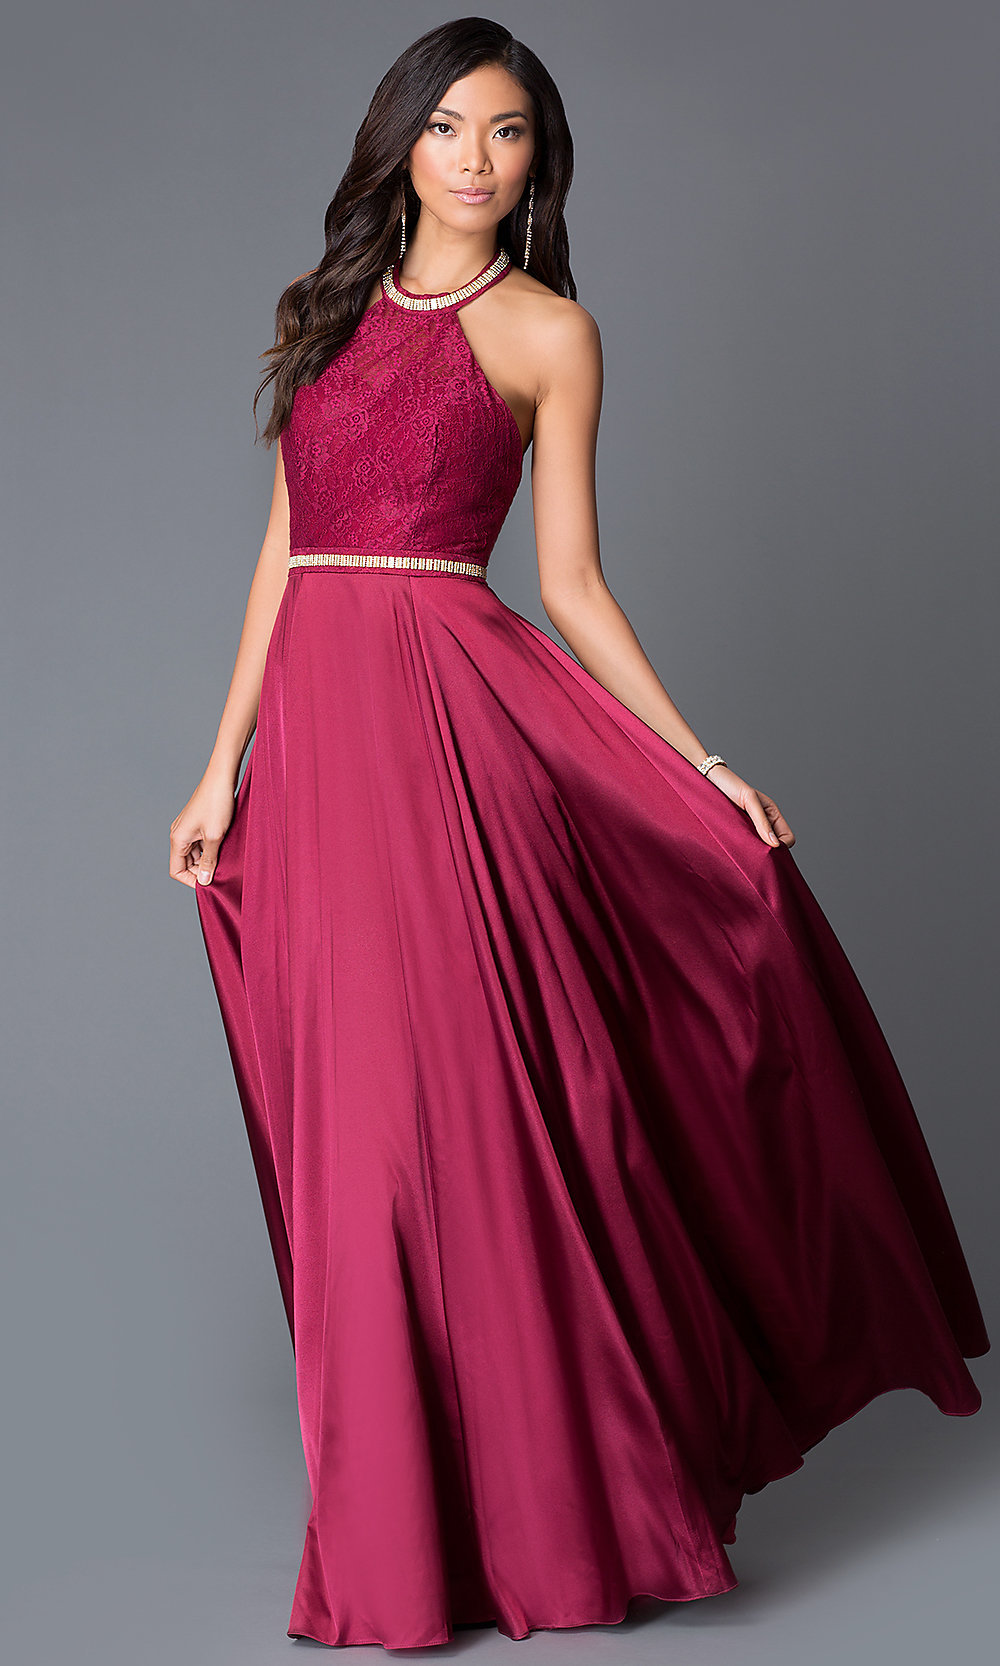 Long Satin and Lace HalterTop Prom DressPromGirl